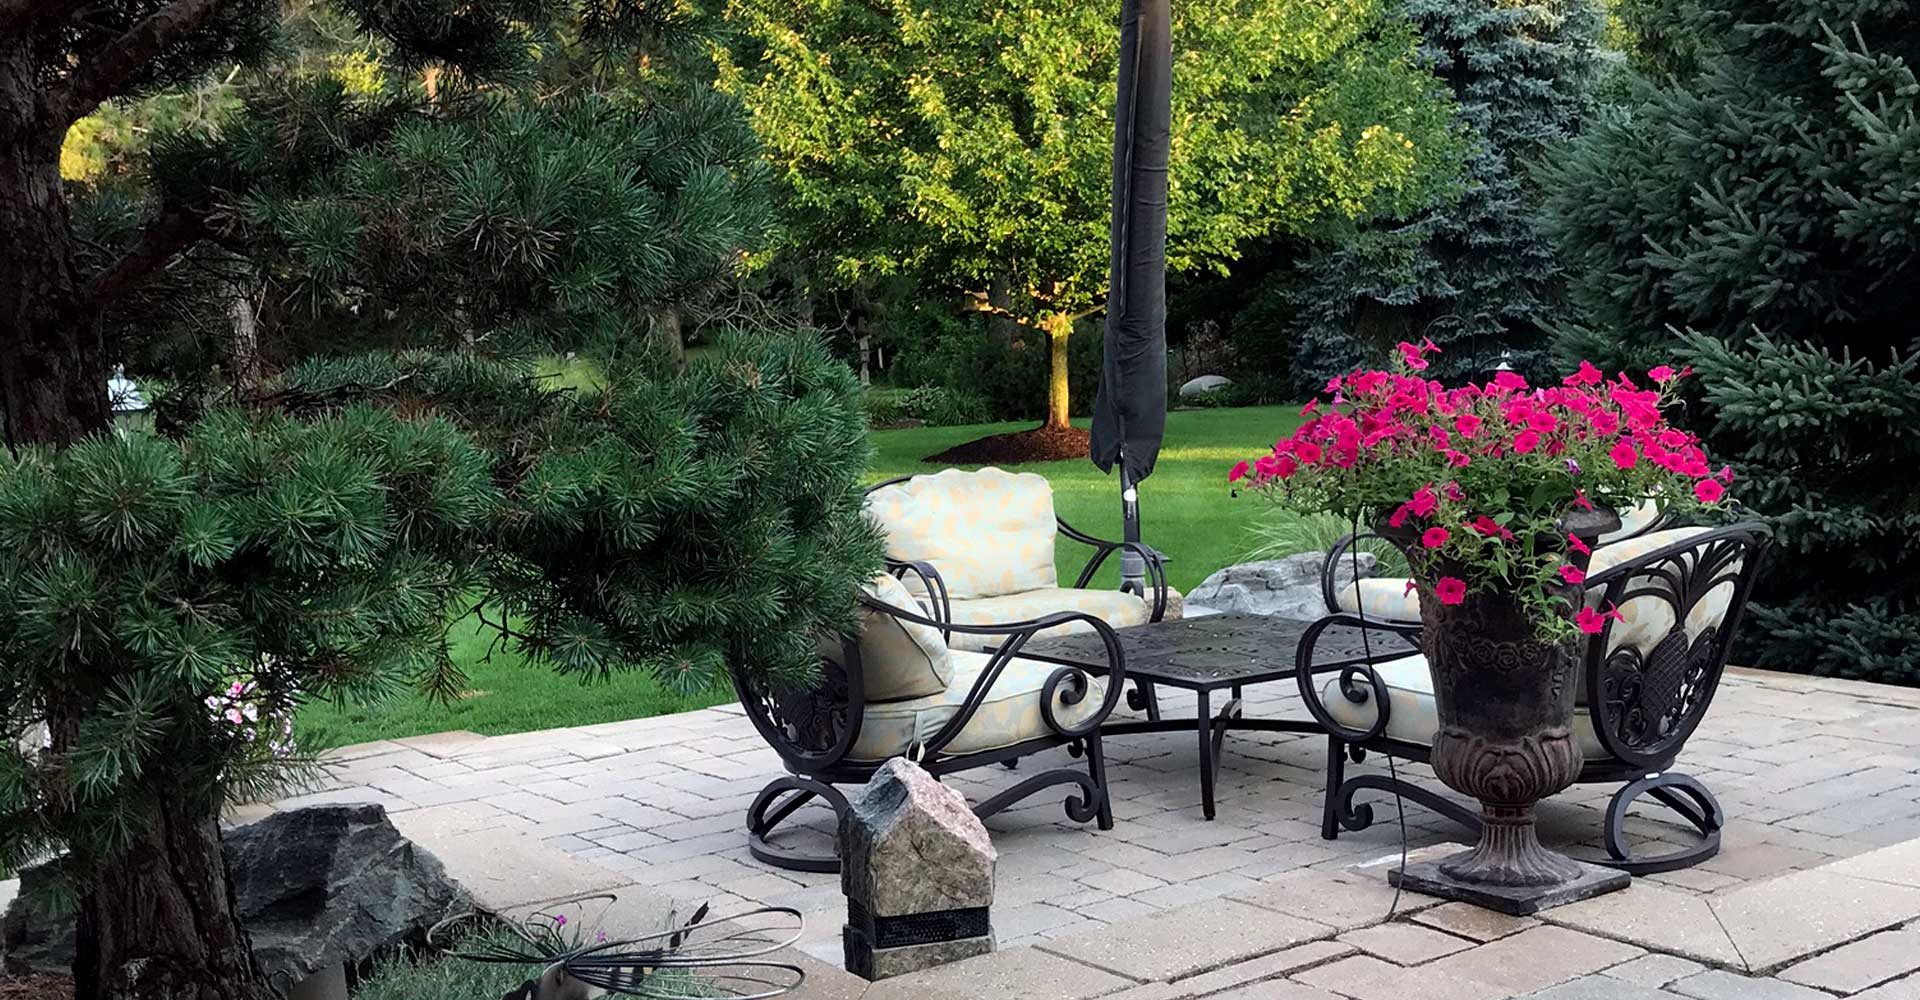 Quality Professional Landscape Care from Four Seasons Landscape Management